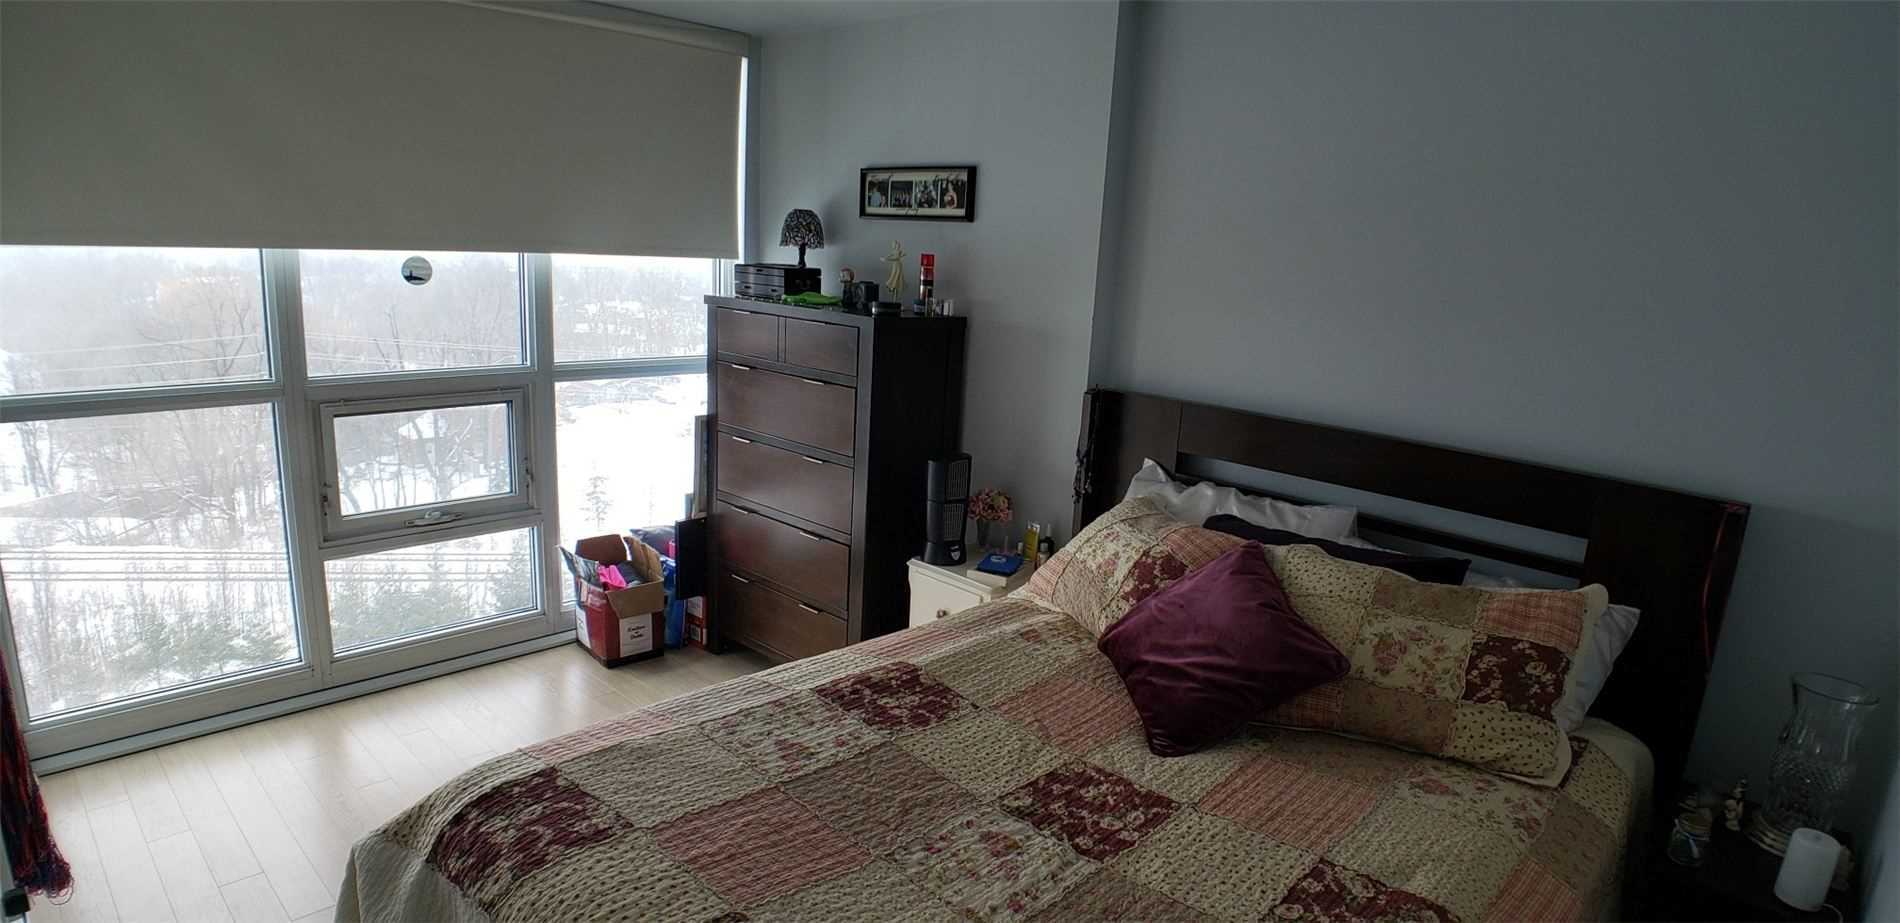 Image 6 of 15 showing inside of 1 Bedroom Condo Apt Apartment for Sale at 100 John St Unit# 803, Brampton L6W0A8